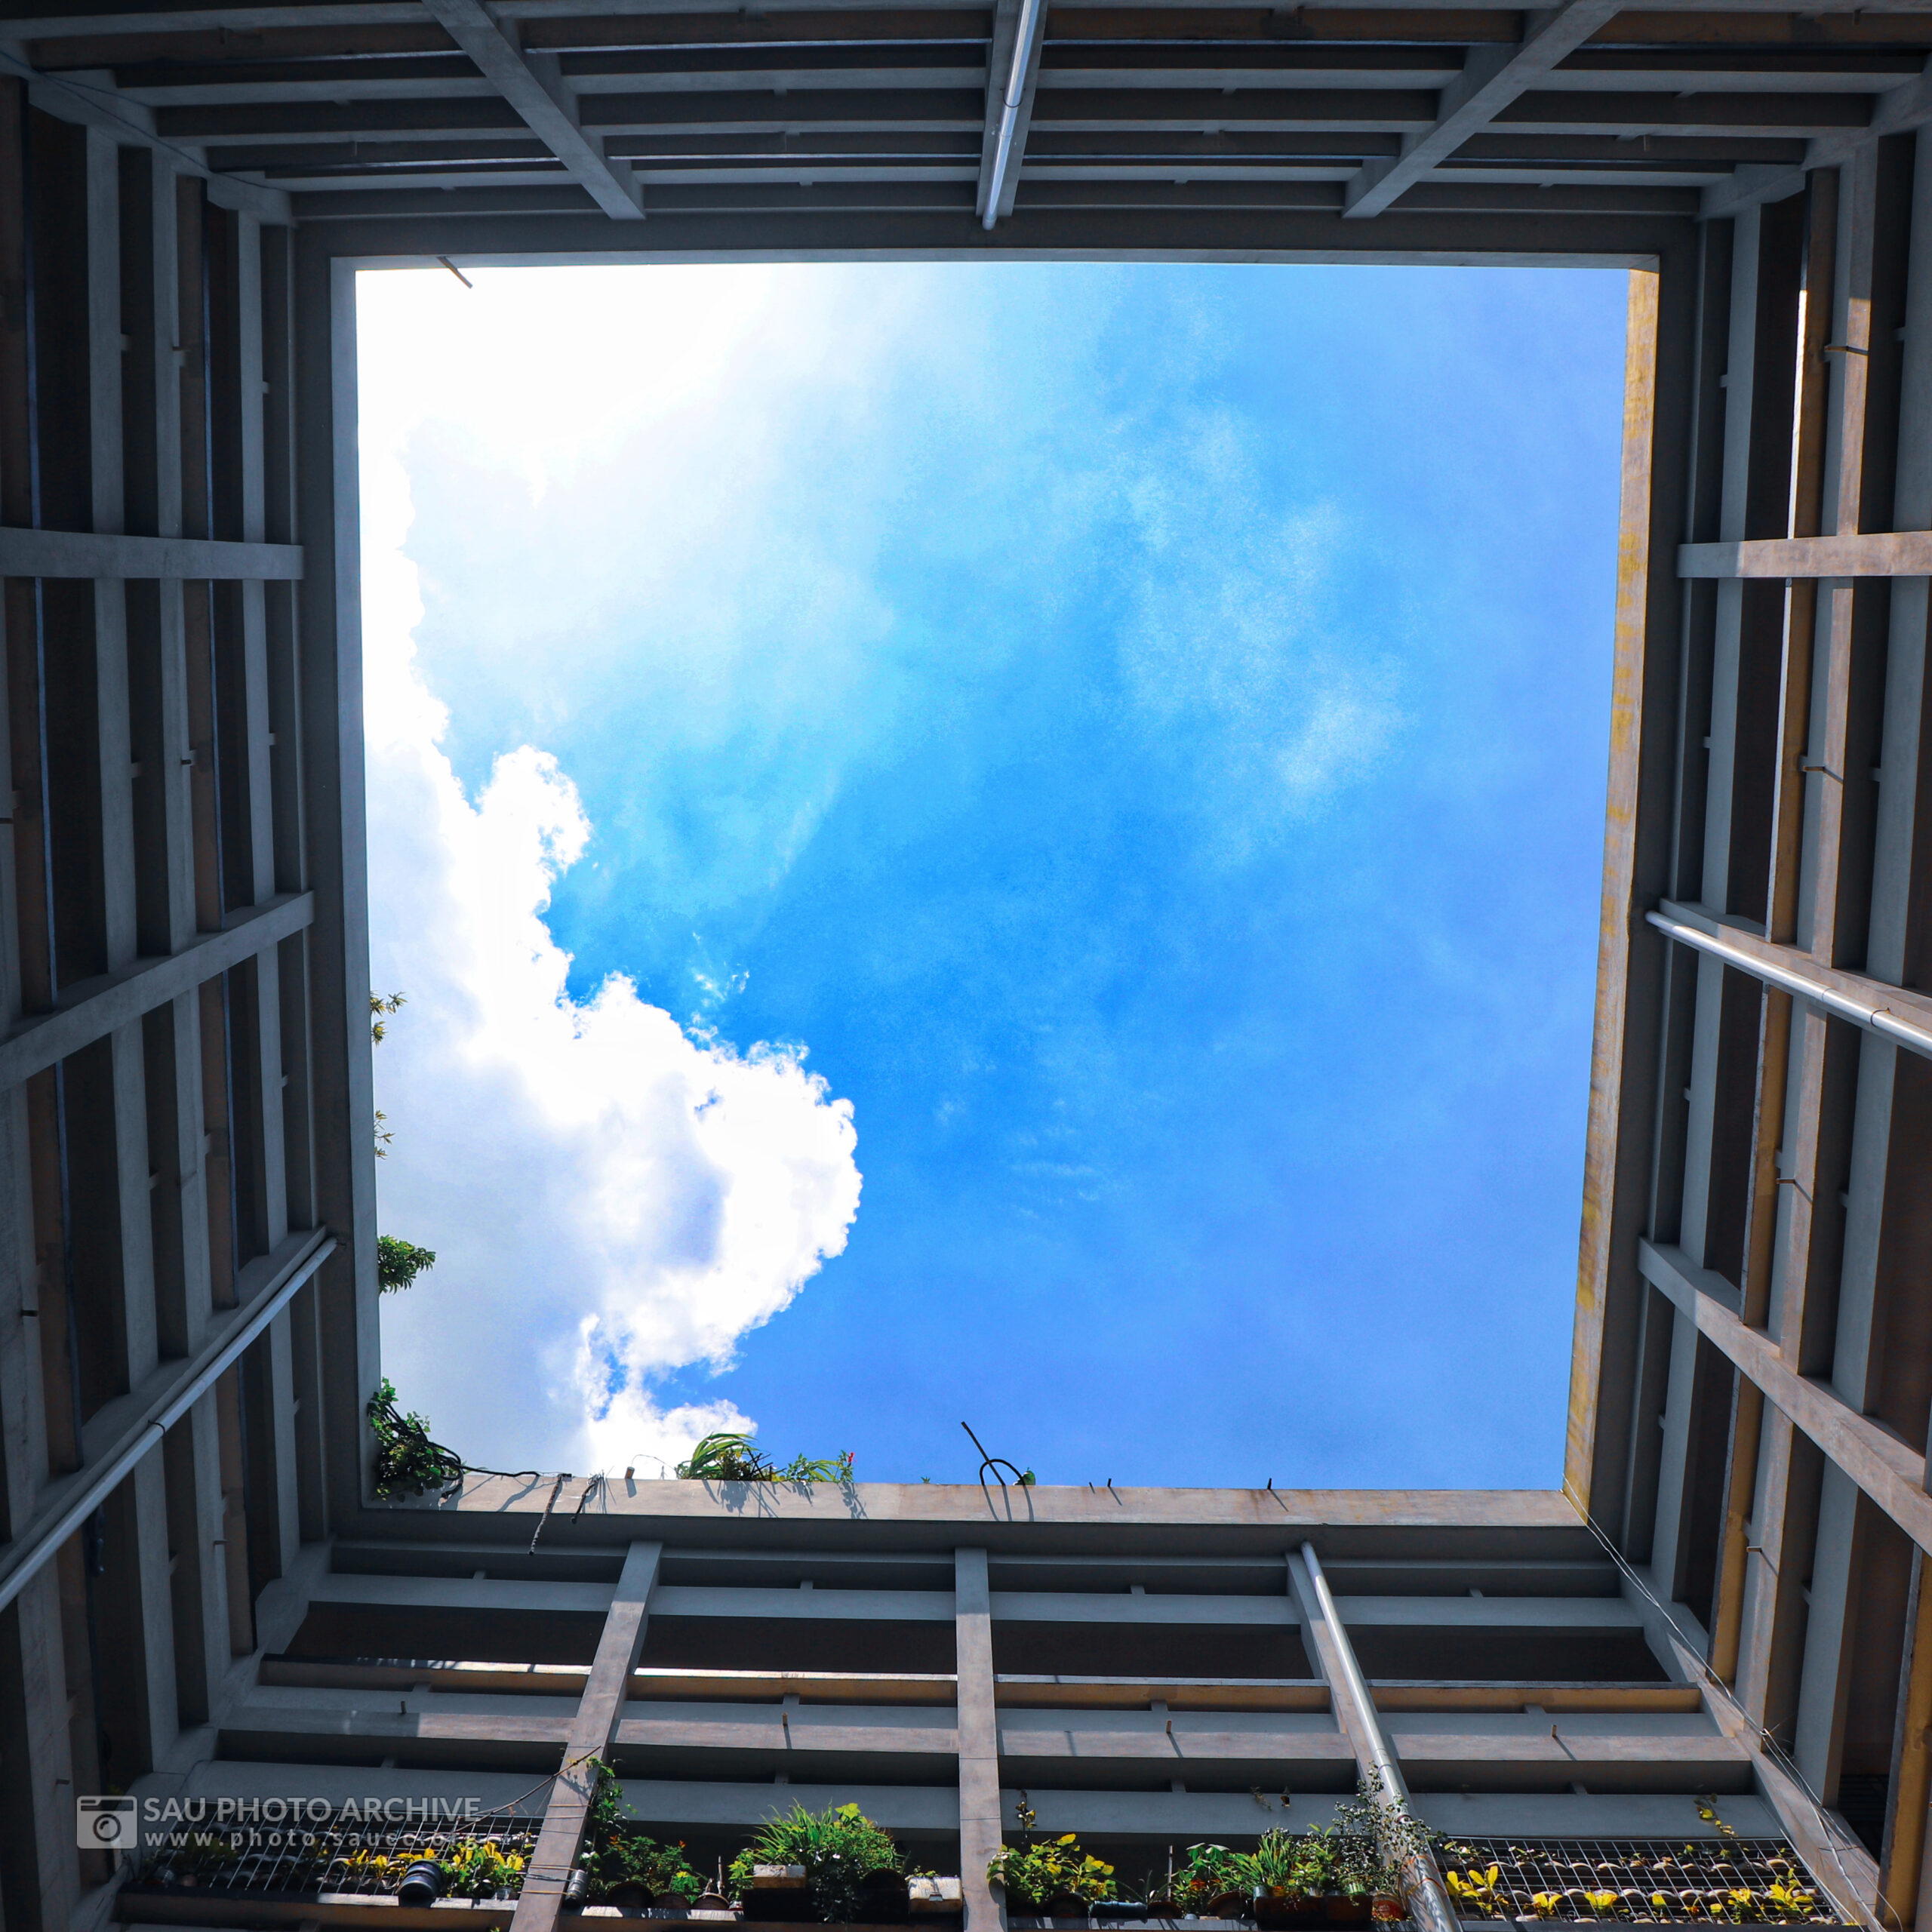 A Scenic photo is captured by Md. Nazmus Sakib Anik at Sher-e-Bangla Agricultural University titled Sky inside the Central Lab